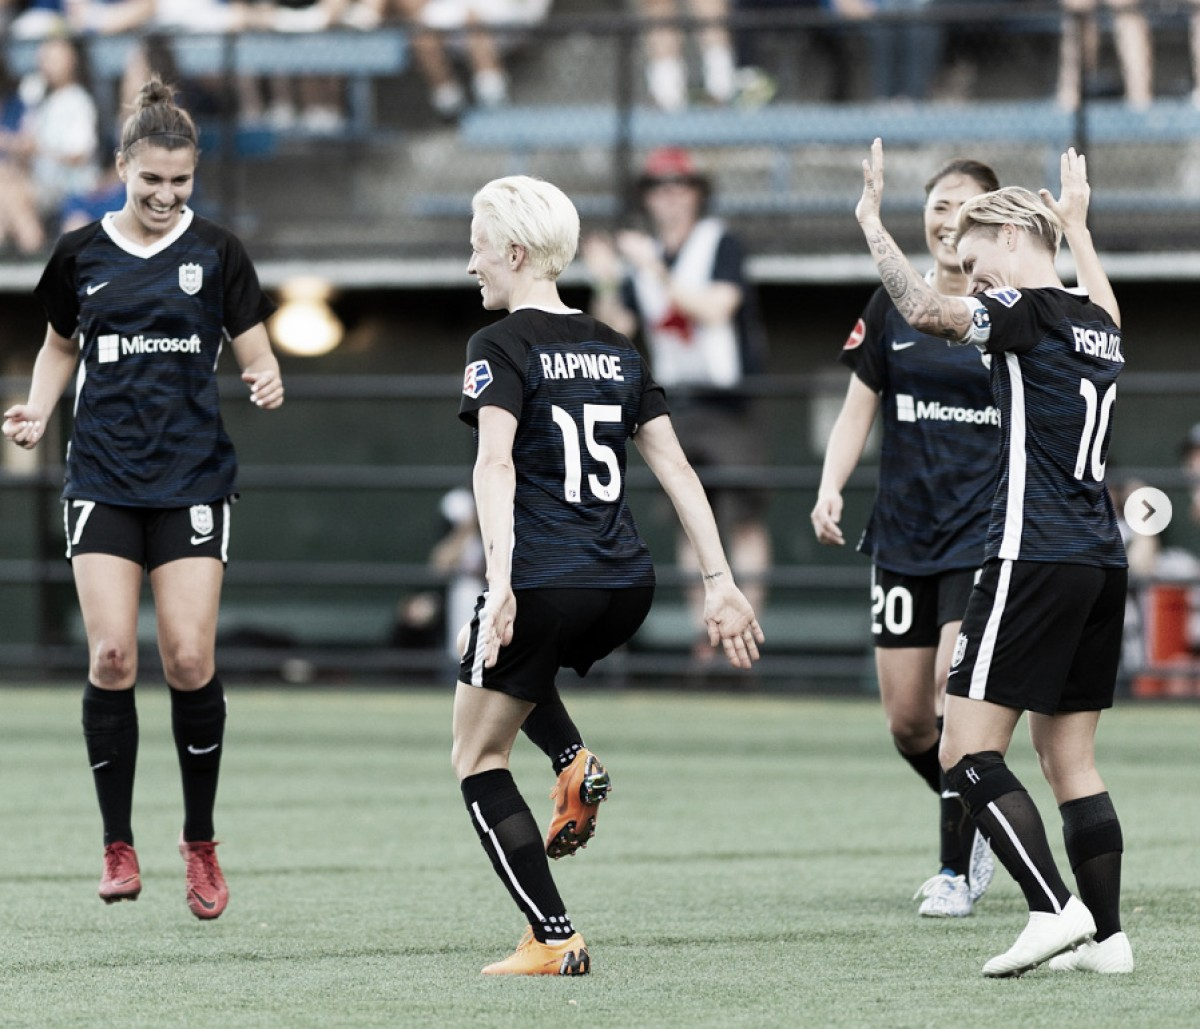 Seattle Reign FC stomps Sky Blue FC to gain sole control of second place